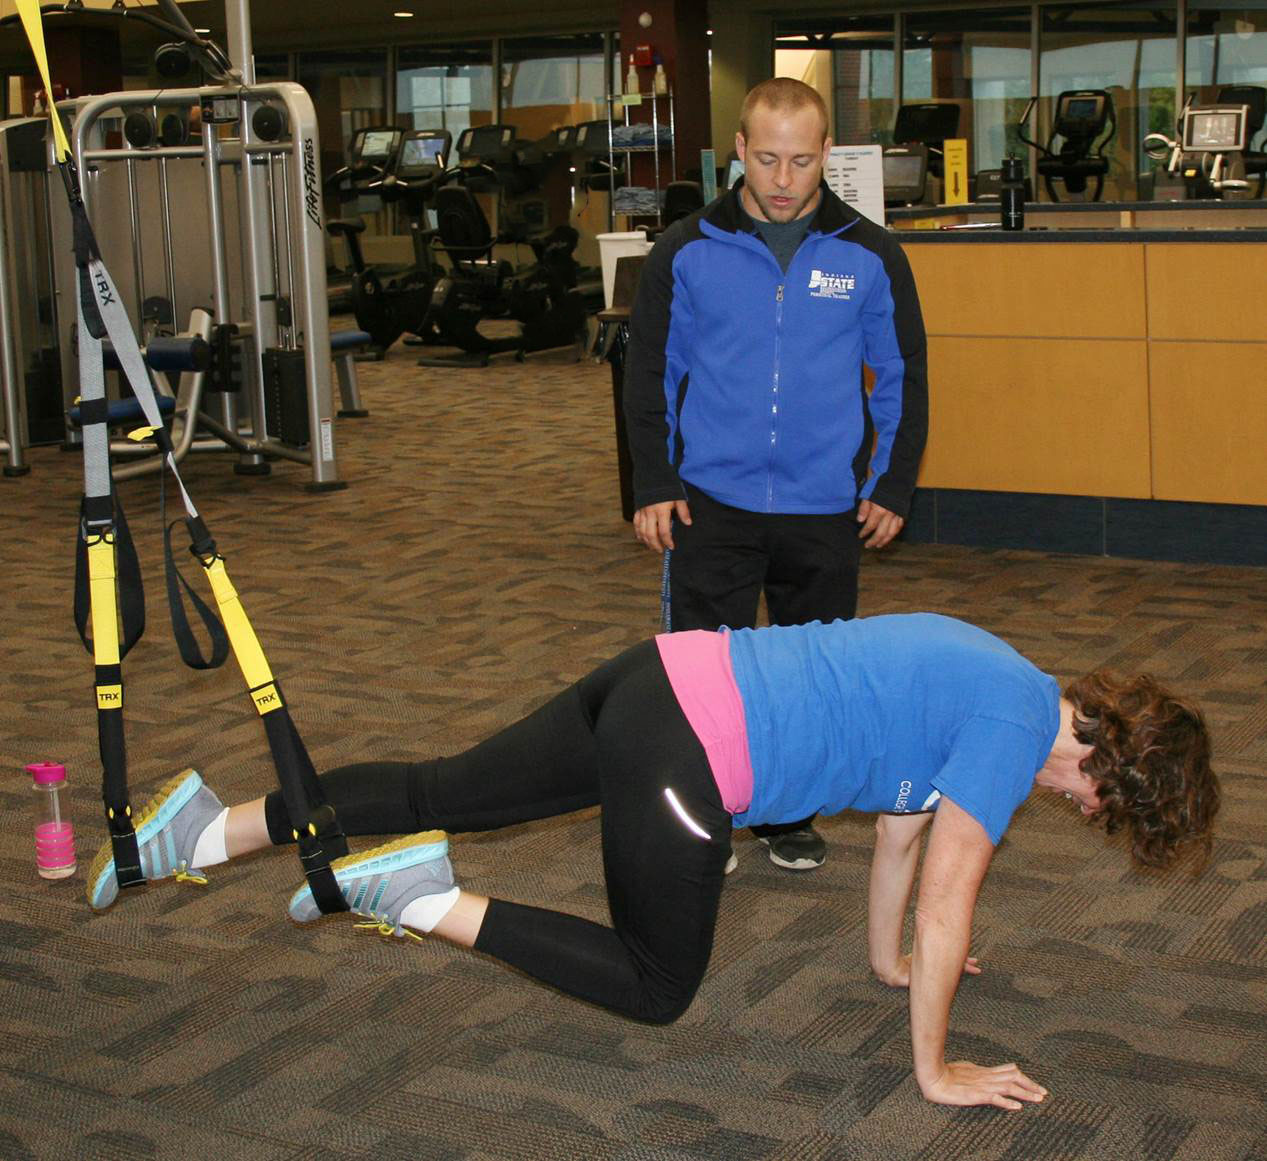 Keri works the TRX strap with Brandon's guidance